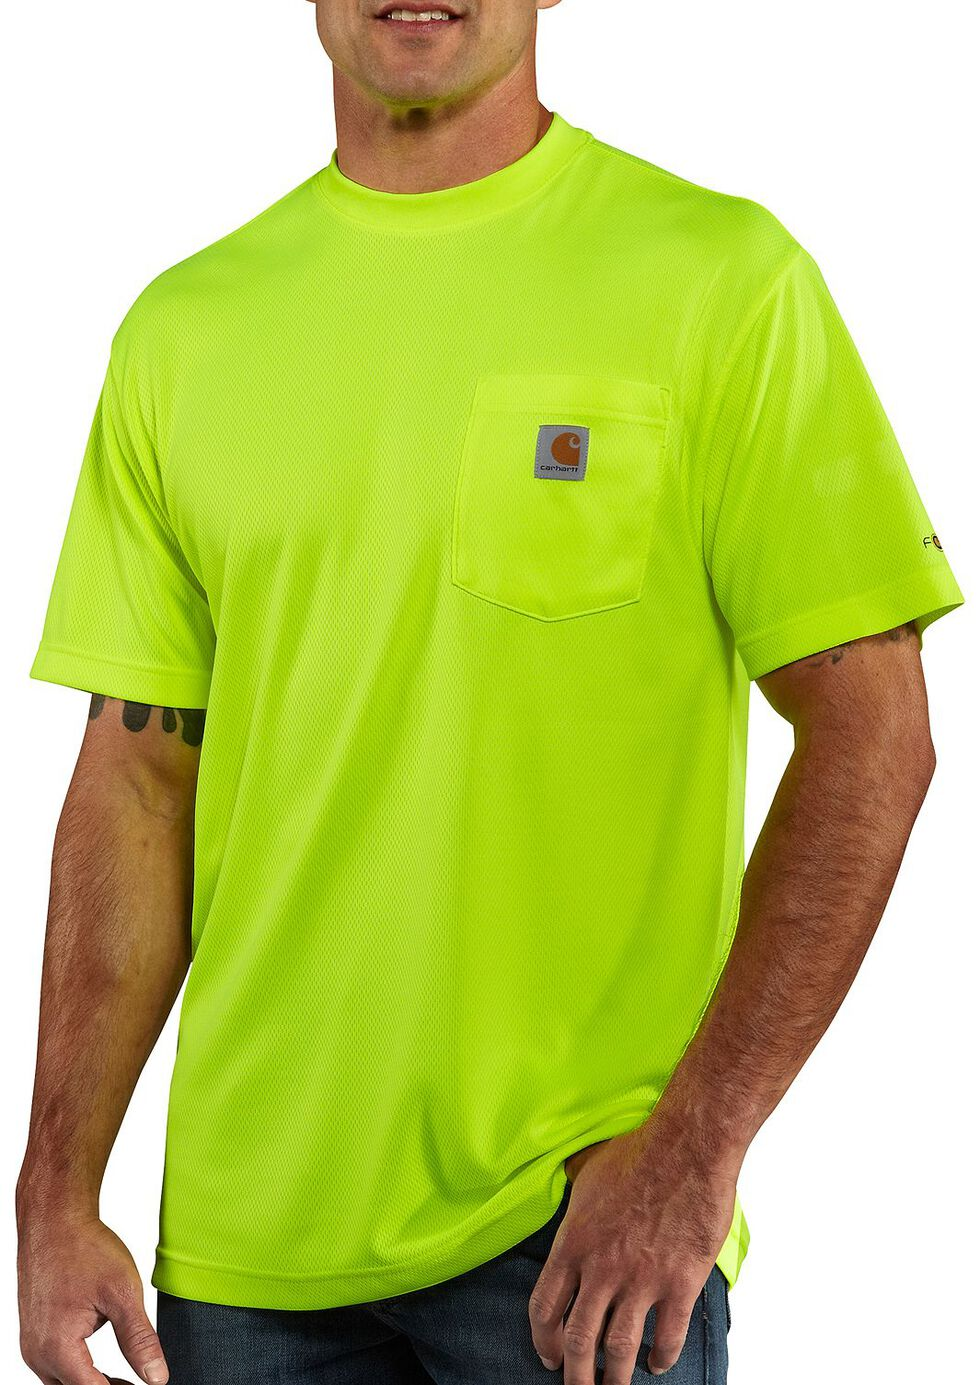 Carhartt Force Color-Enhanced T-Shirt - Big & Tall, Lime, hi-res